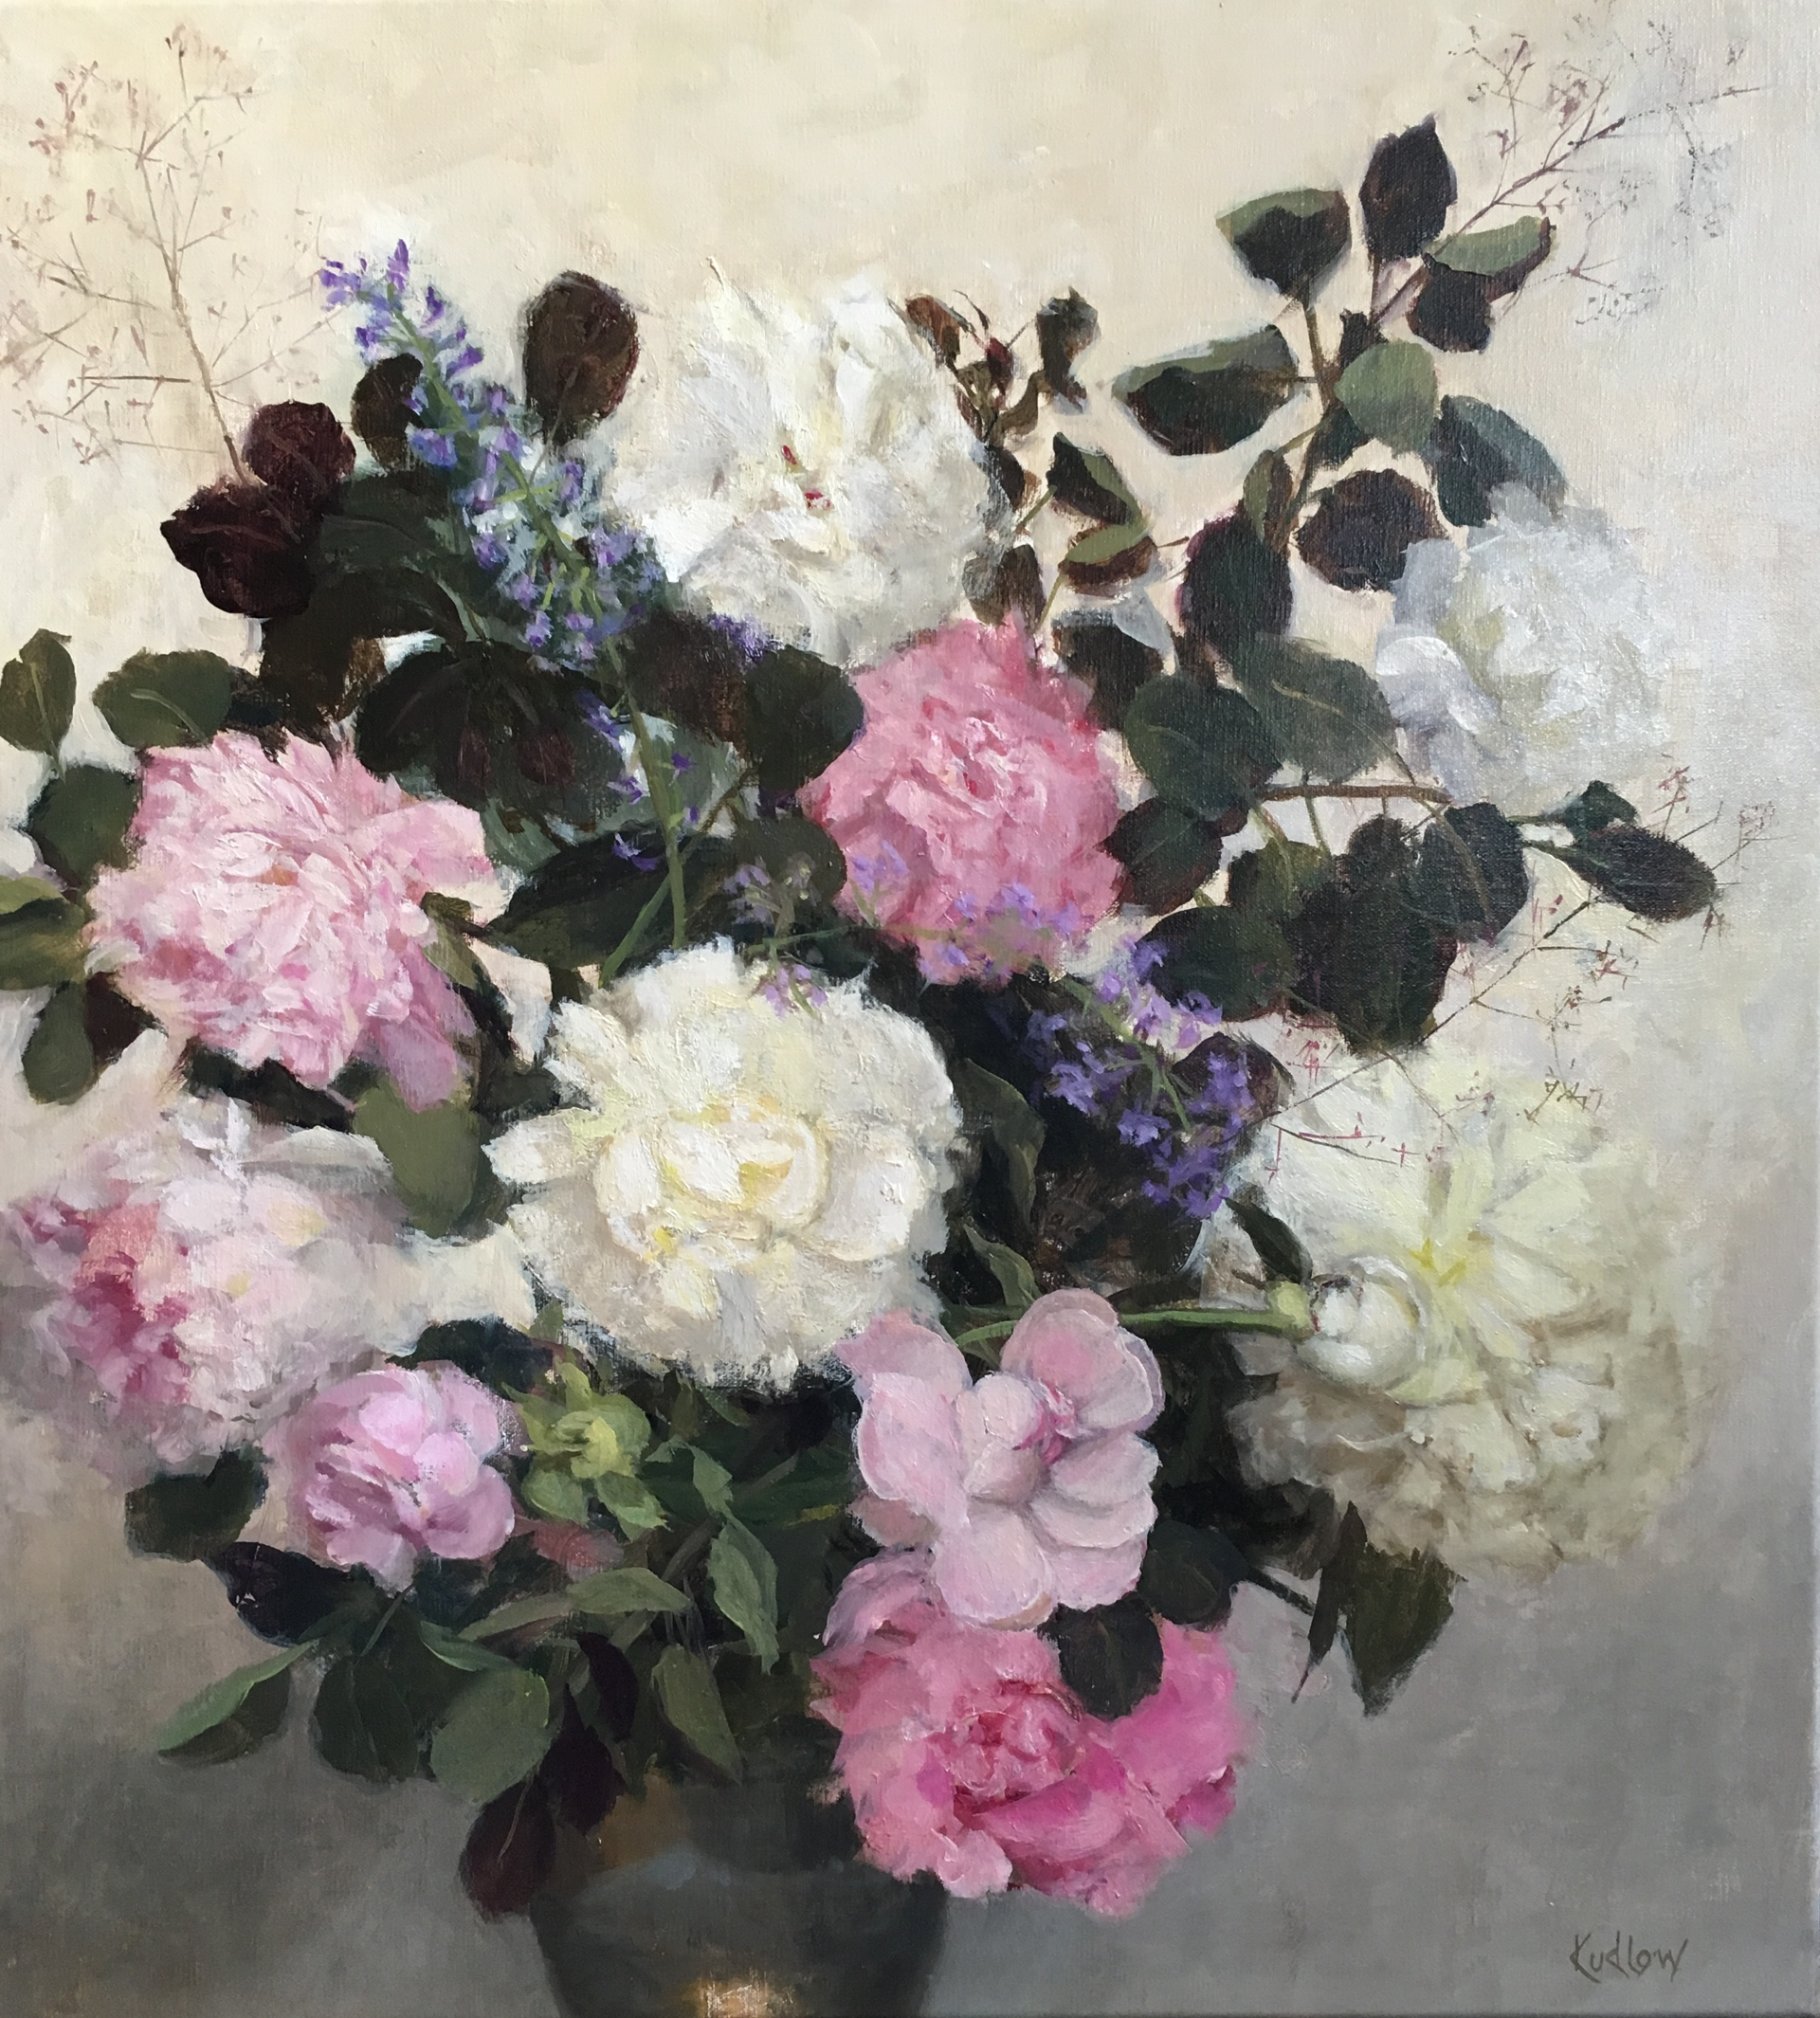 Peony and Roses by Judith Pond Kudlow